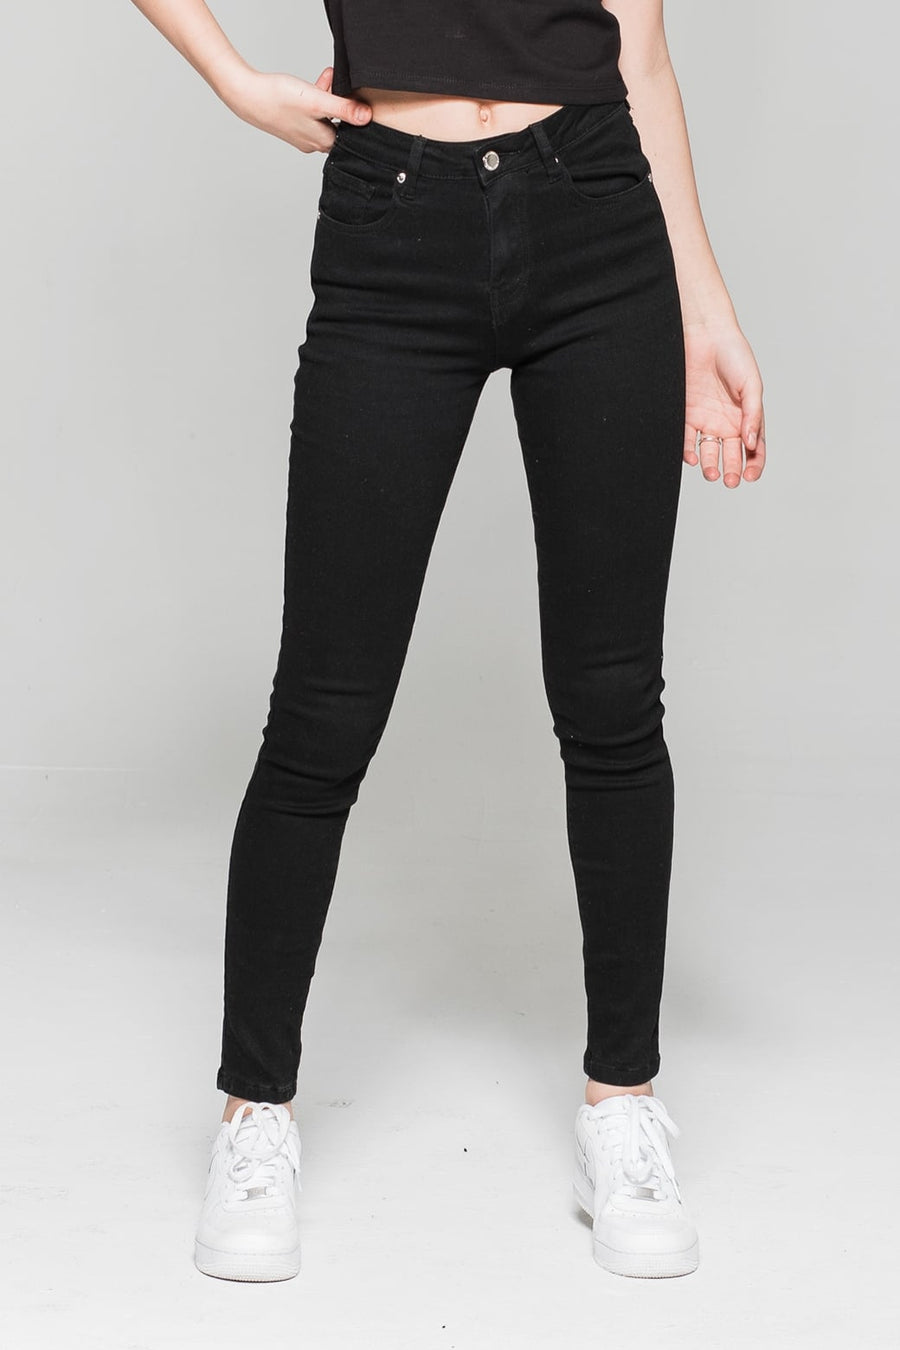 Women's Denim Black